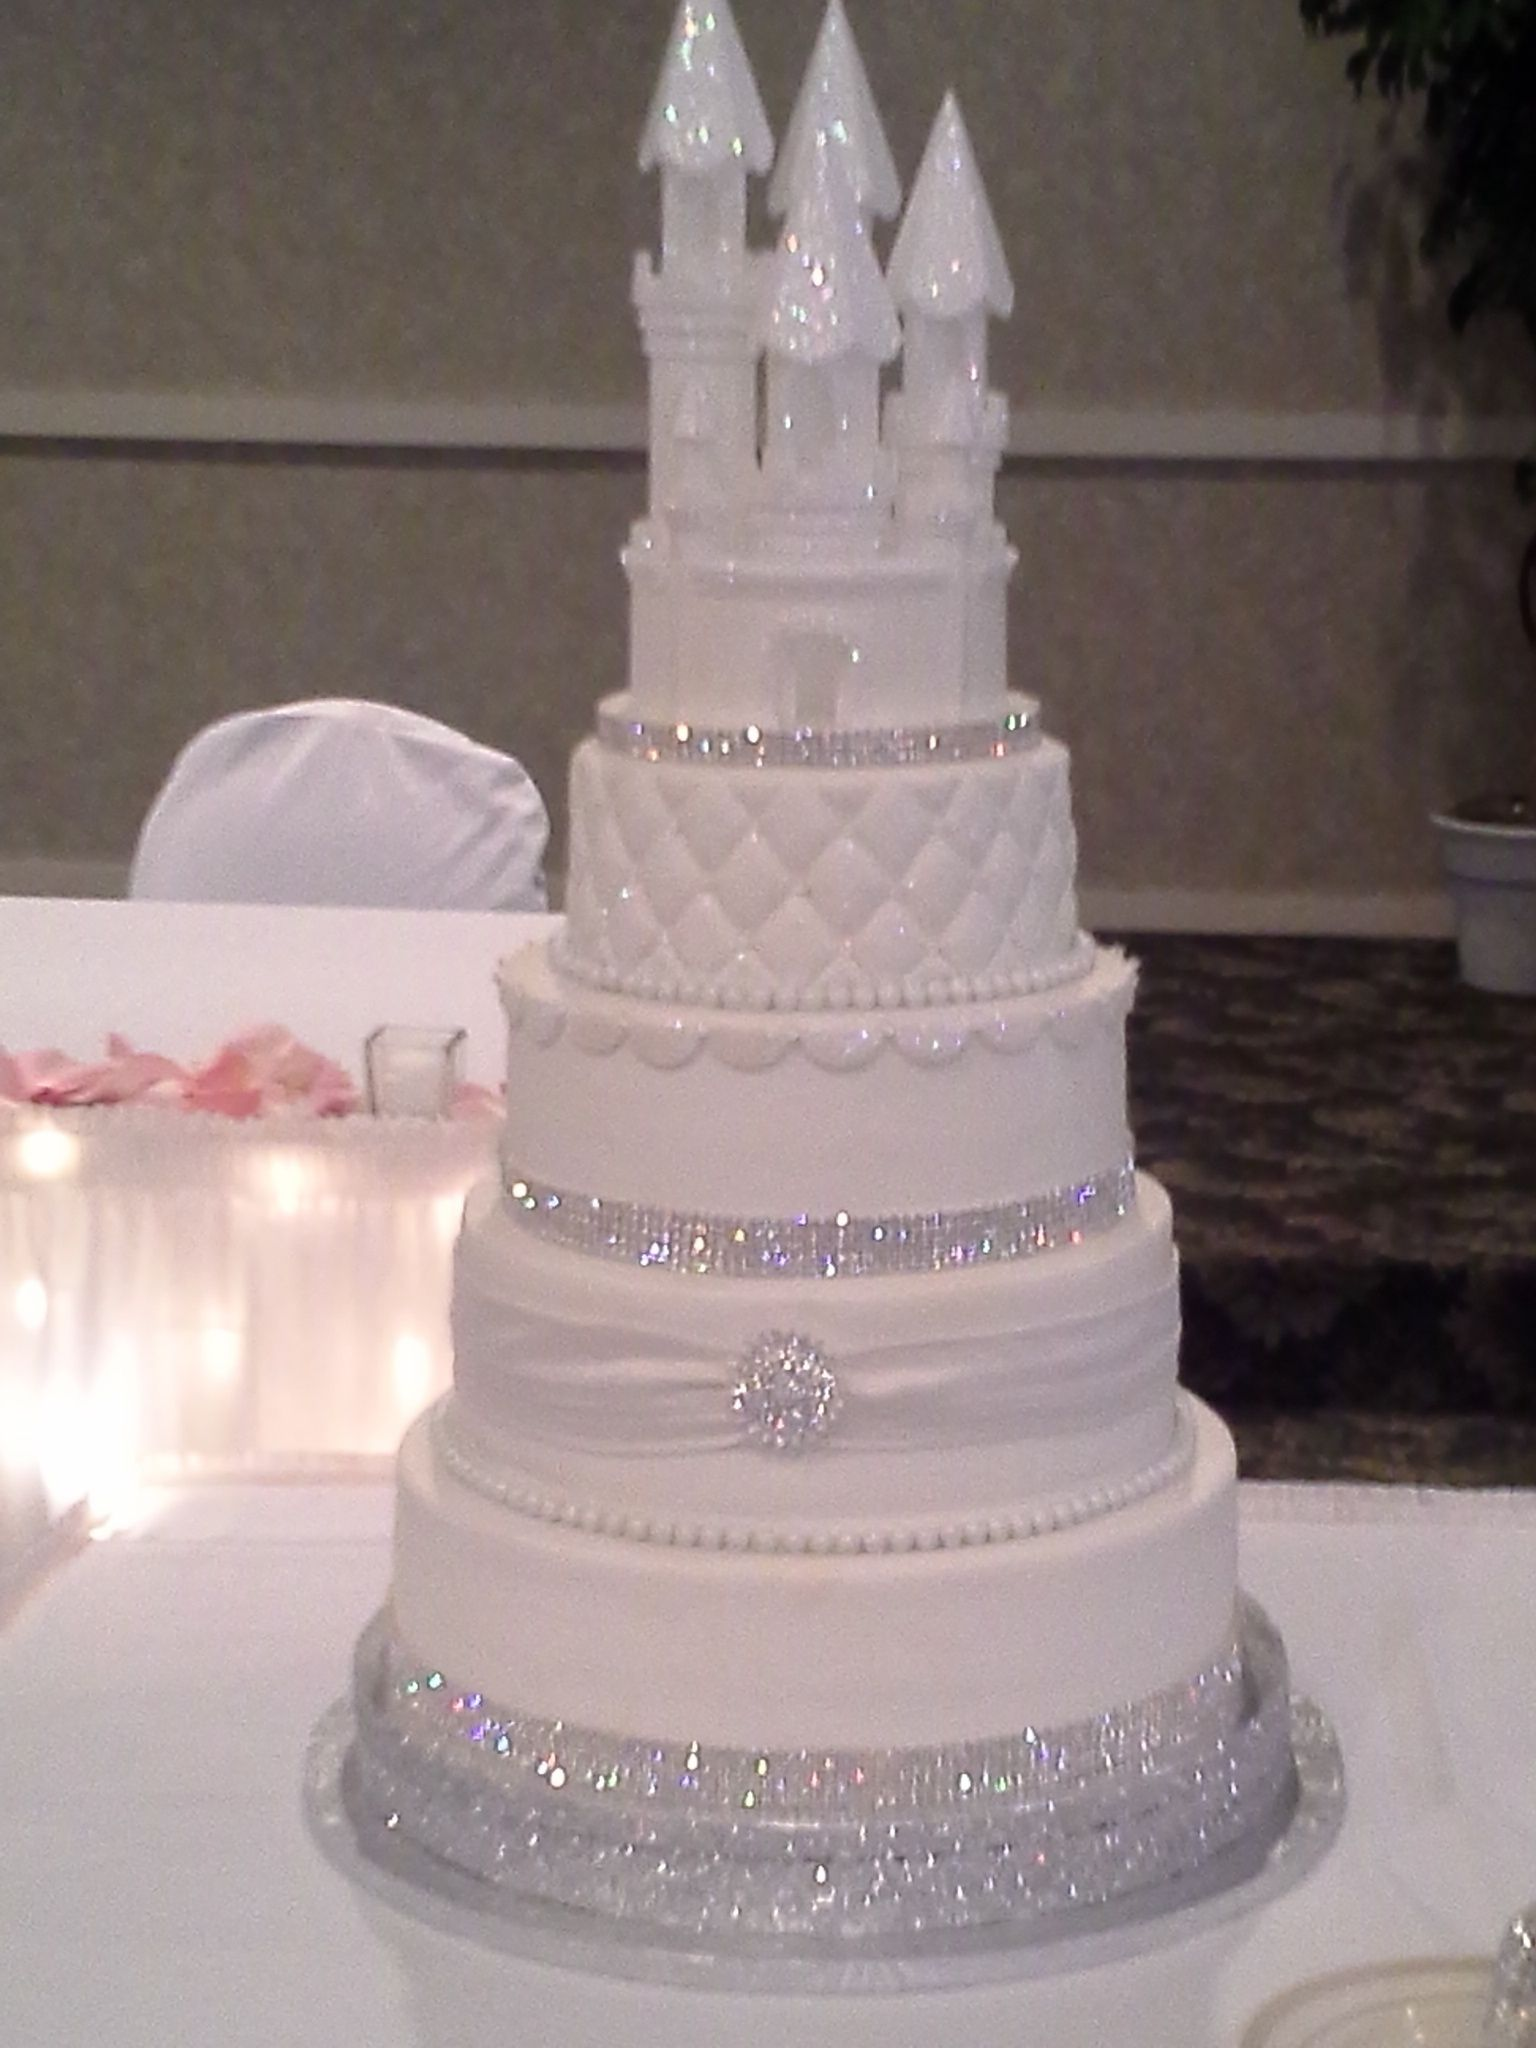 THIS IS MYYY WEDDING CAKE DON T EVEN THINK OF DUPLICATING ME